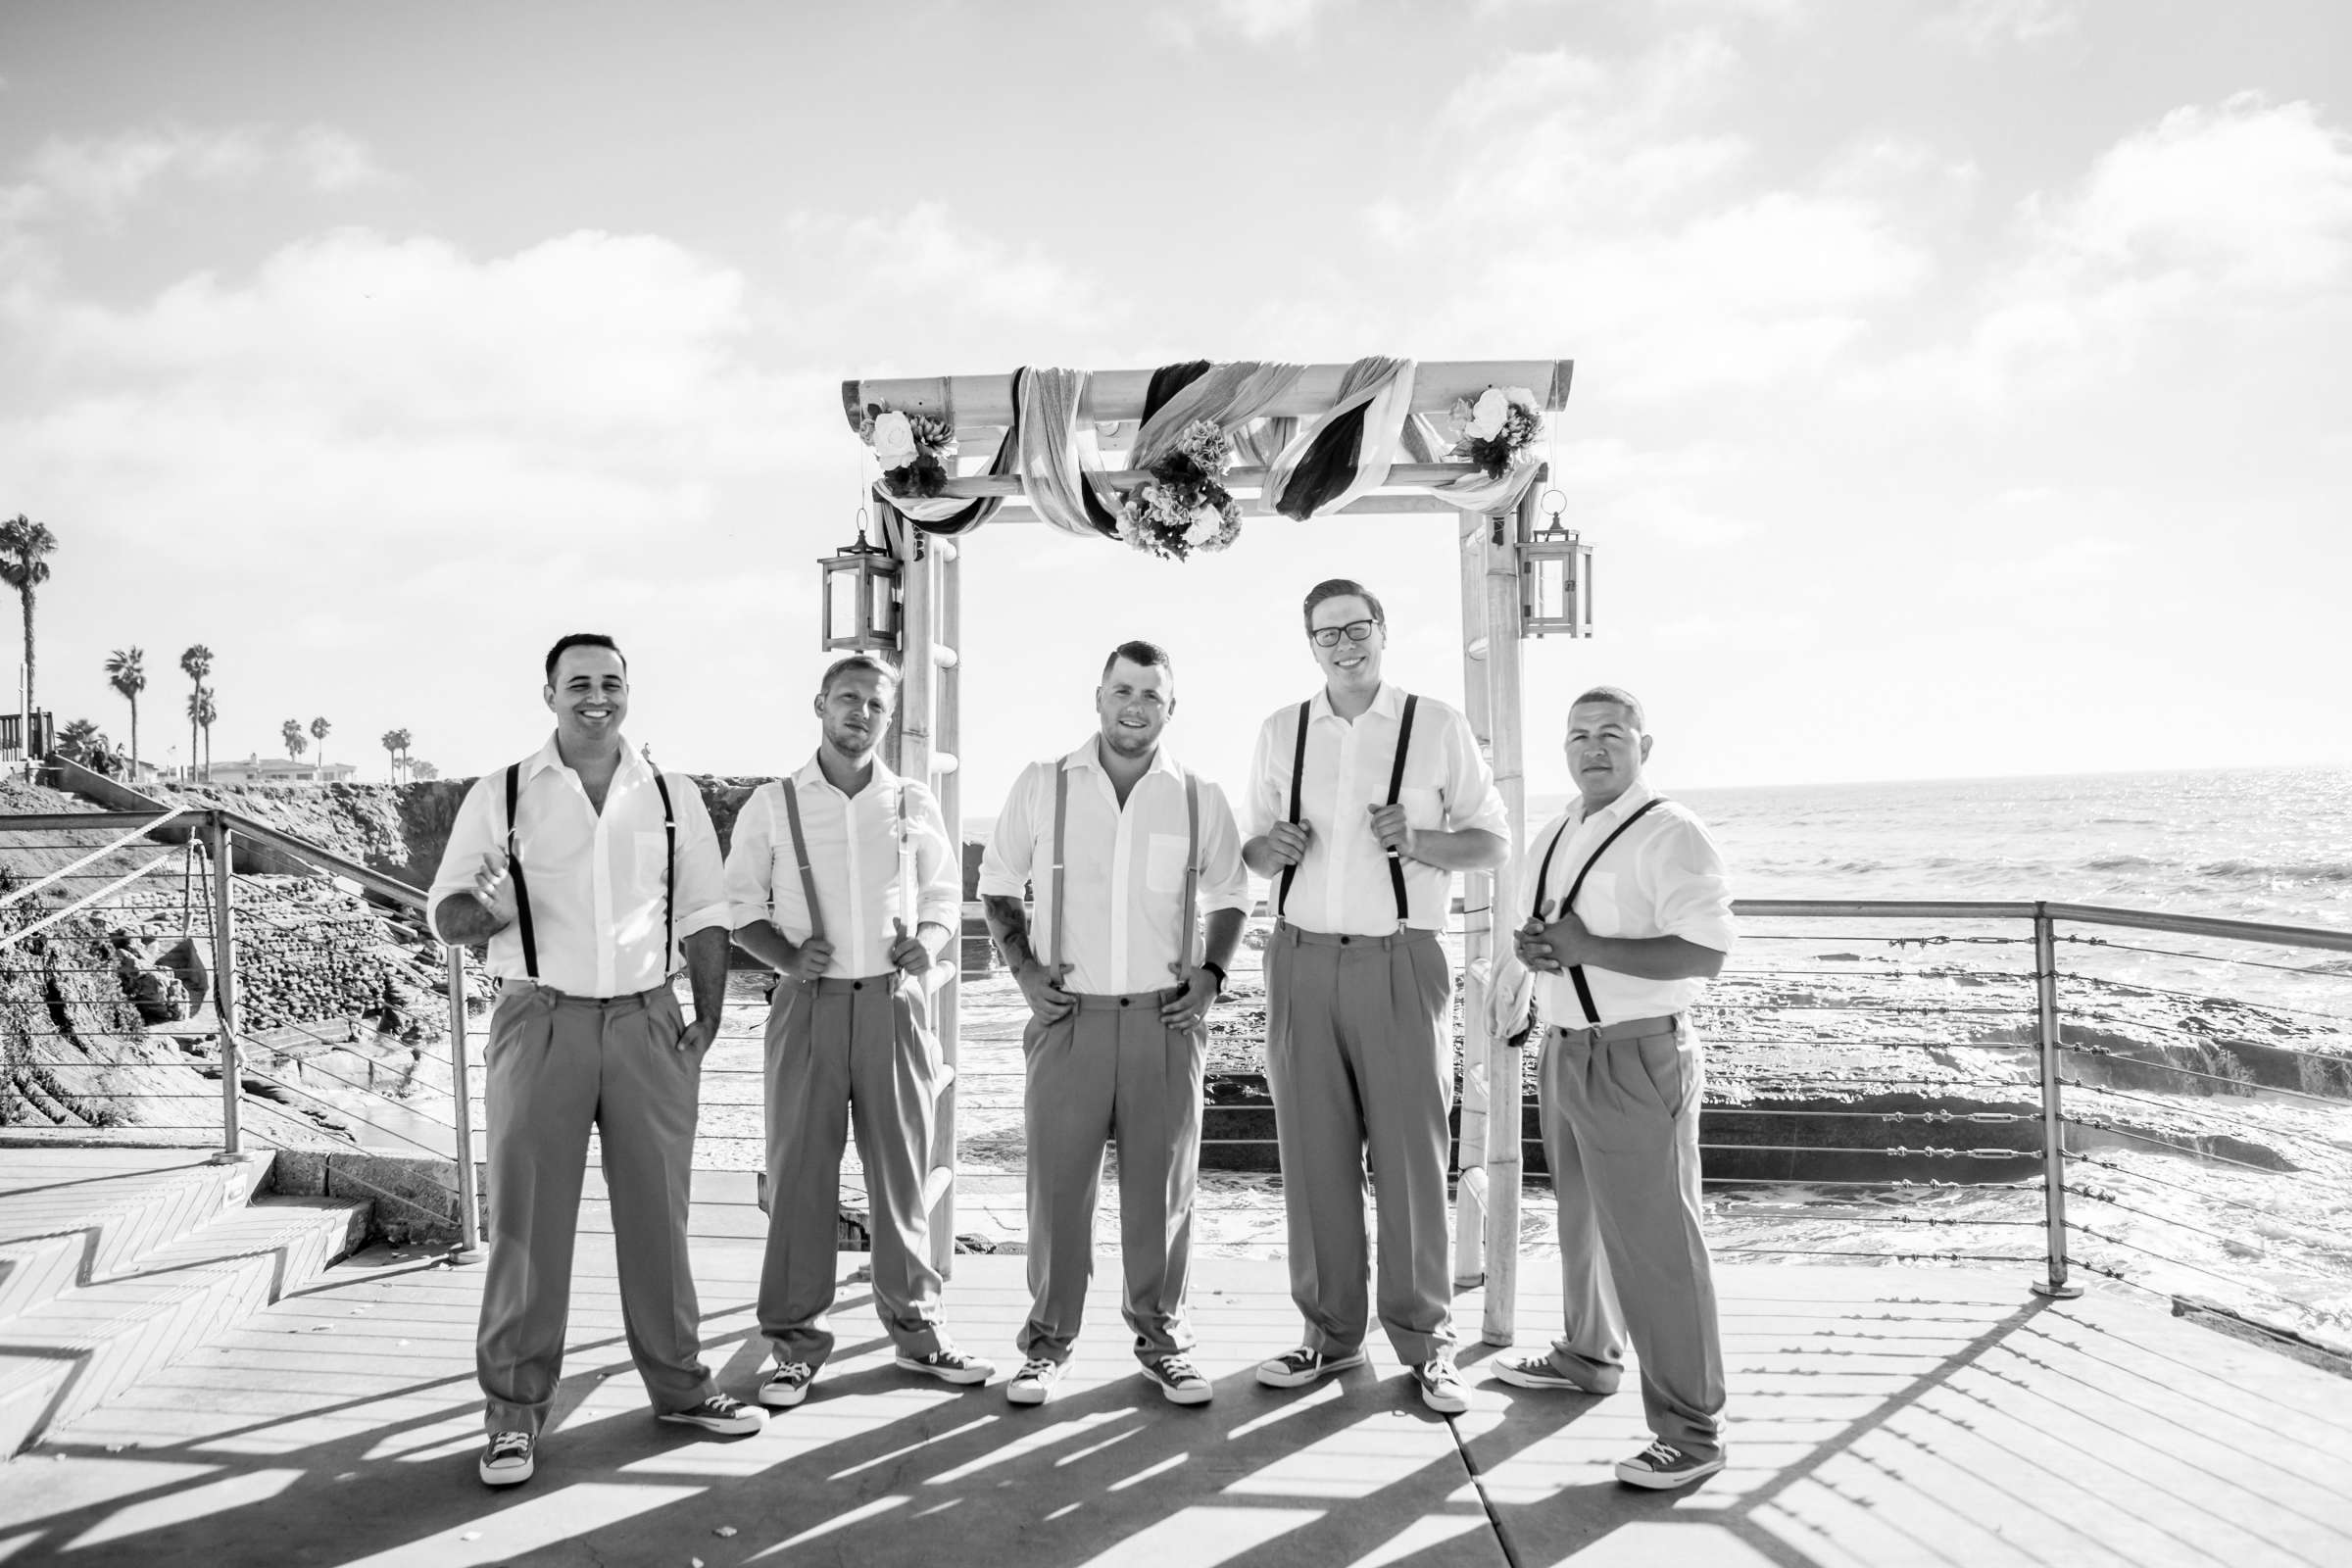 The Inn at Sunset Cliffs Wedding, Melinda and Benjamin Wedding Photo #76 by True Photography